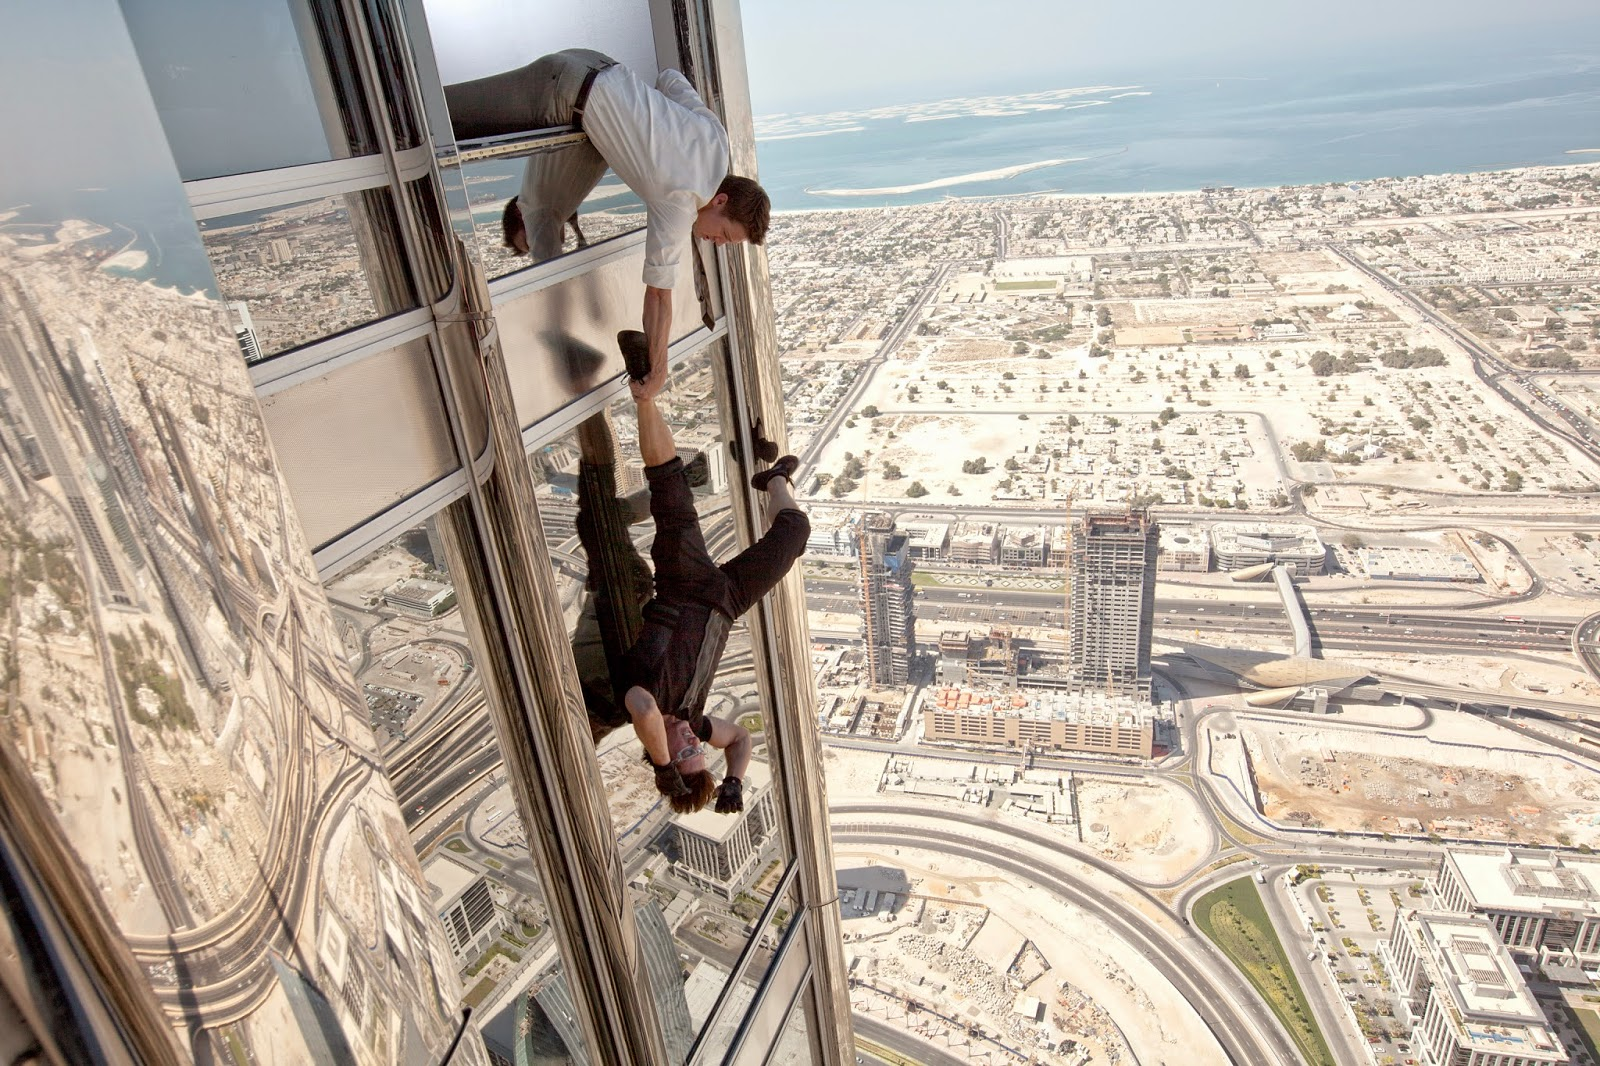 mission-impossible-ghost-protocol-image-13